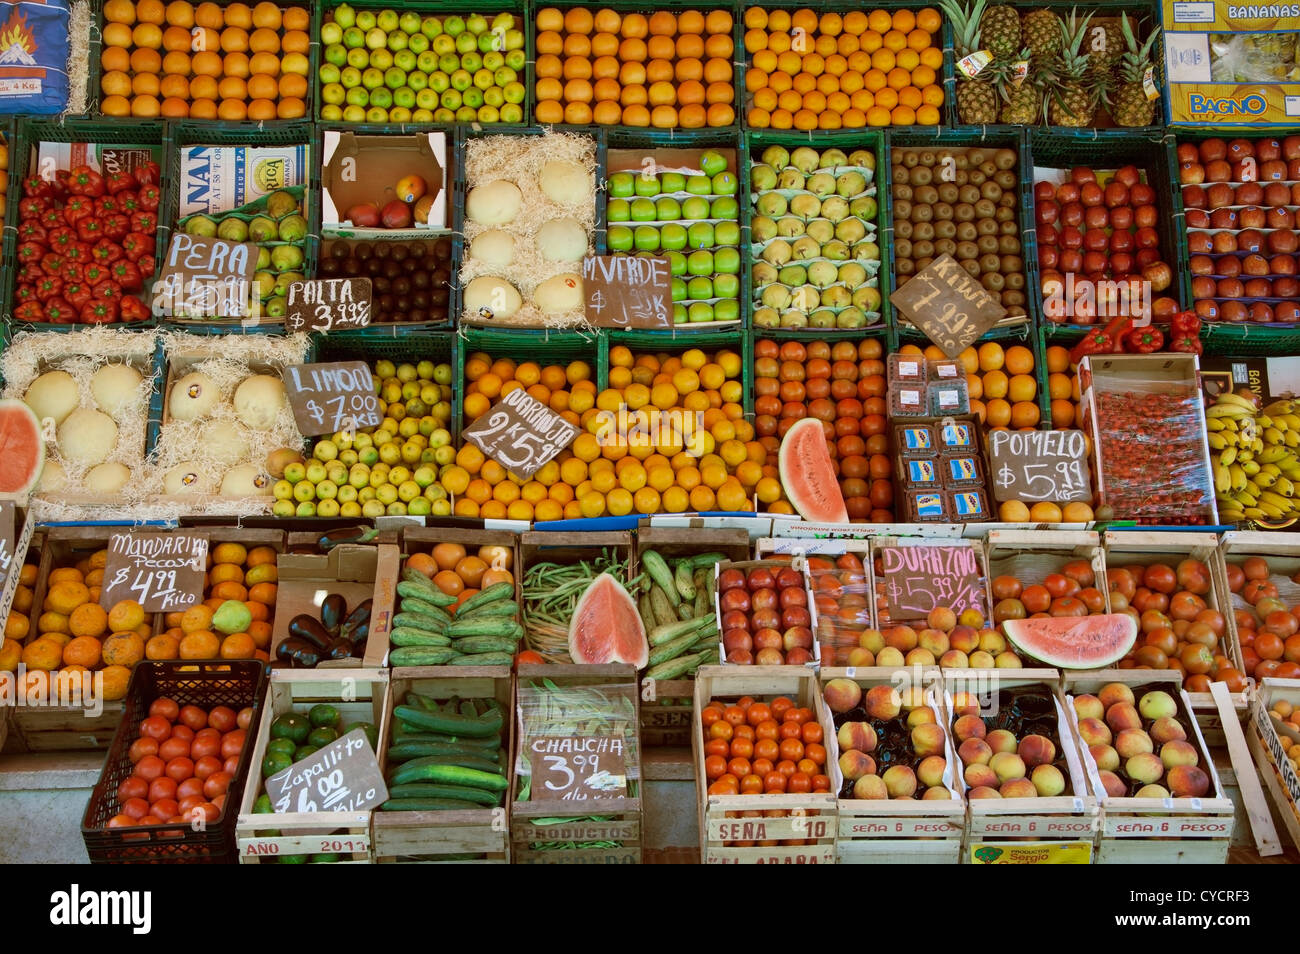 The greengrocery - Stock Image